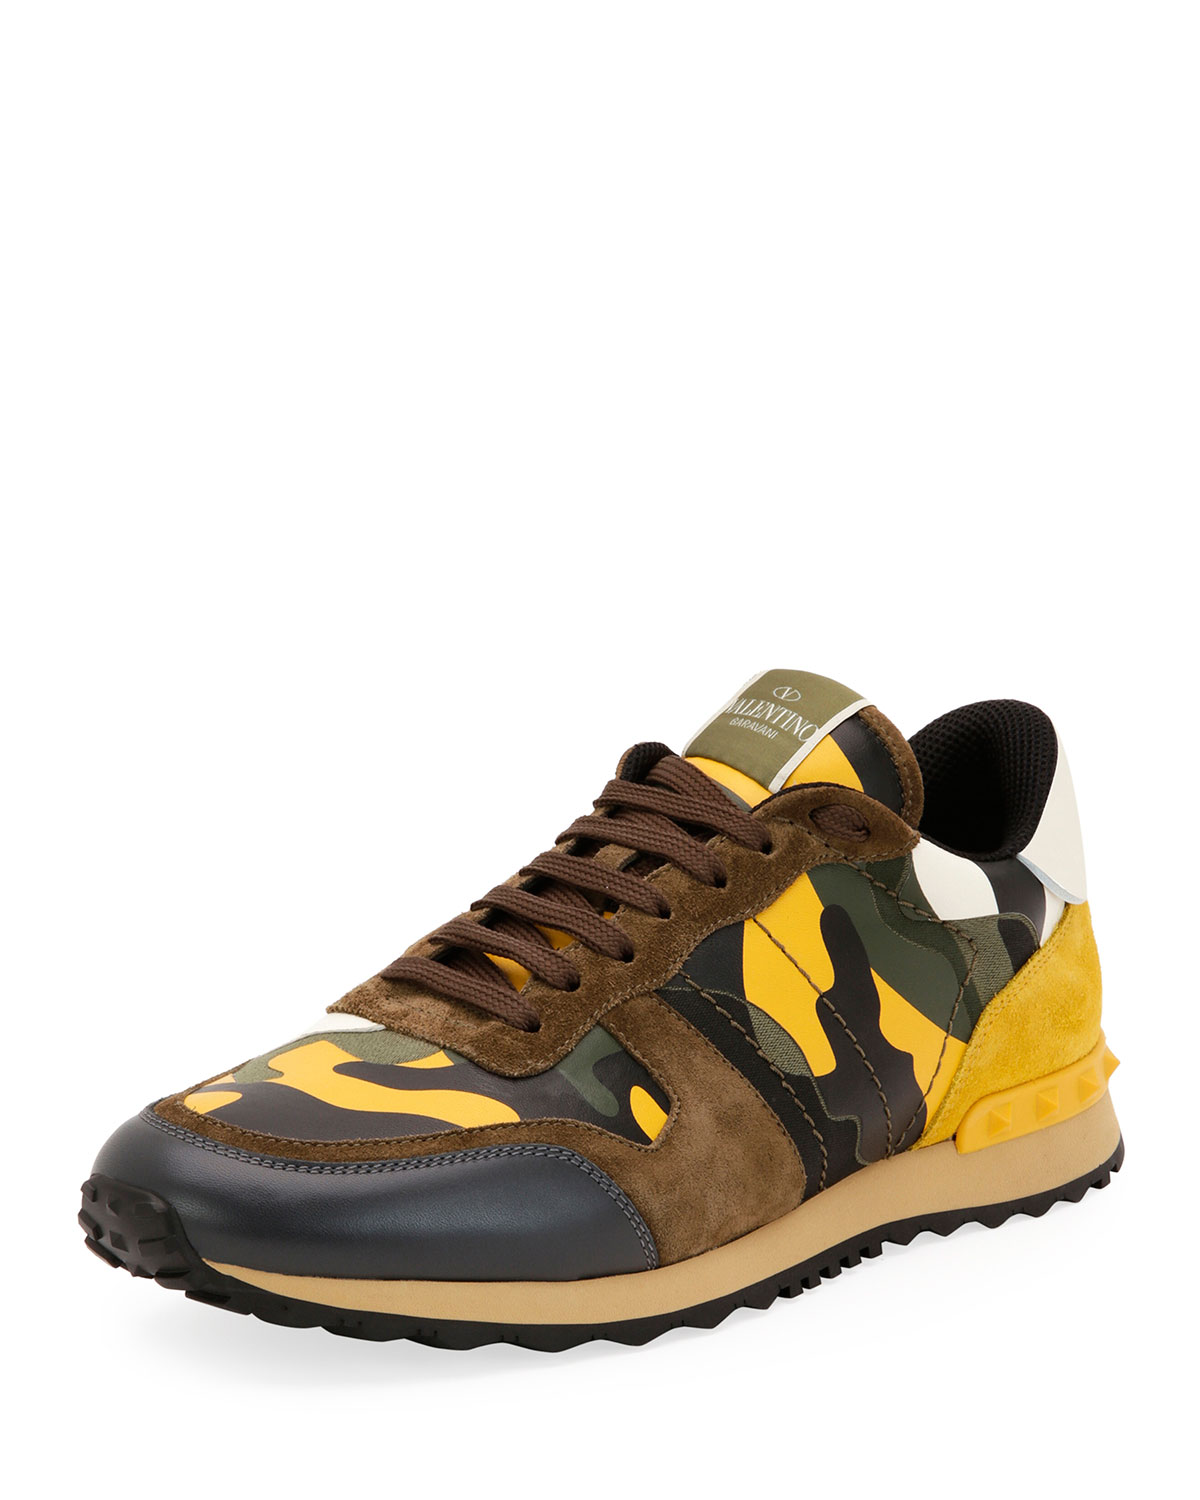 black, blue and orange camouflage rockrunner leather sneakers Valentino